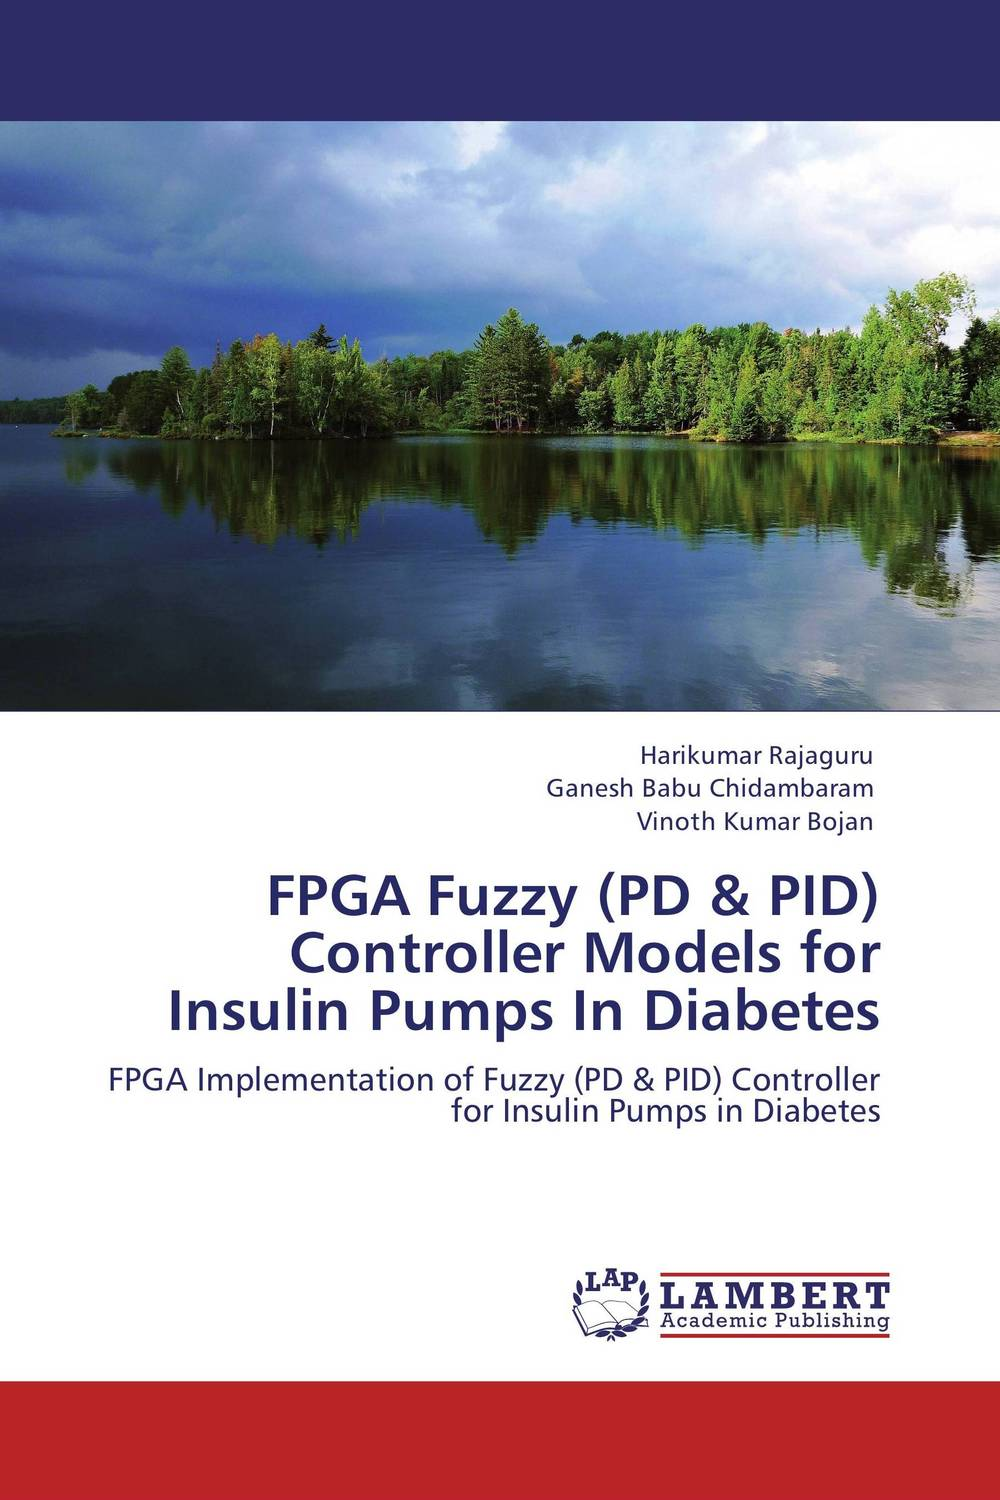 FPGA Fuzzy (PD & PID) Controller Models for Insulin Pumps In Diabetes n j patil r h chile and l m waghmare design of adaptive fuzzy controllers